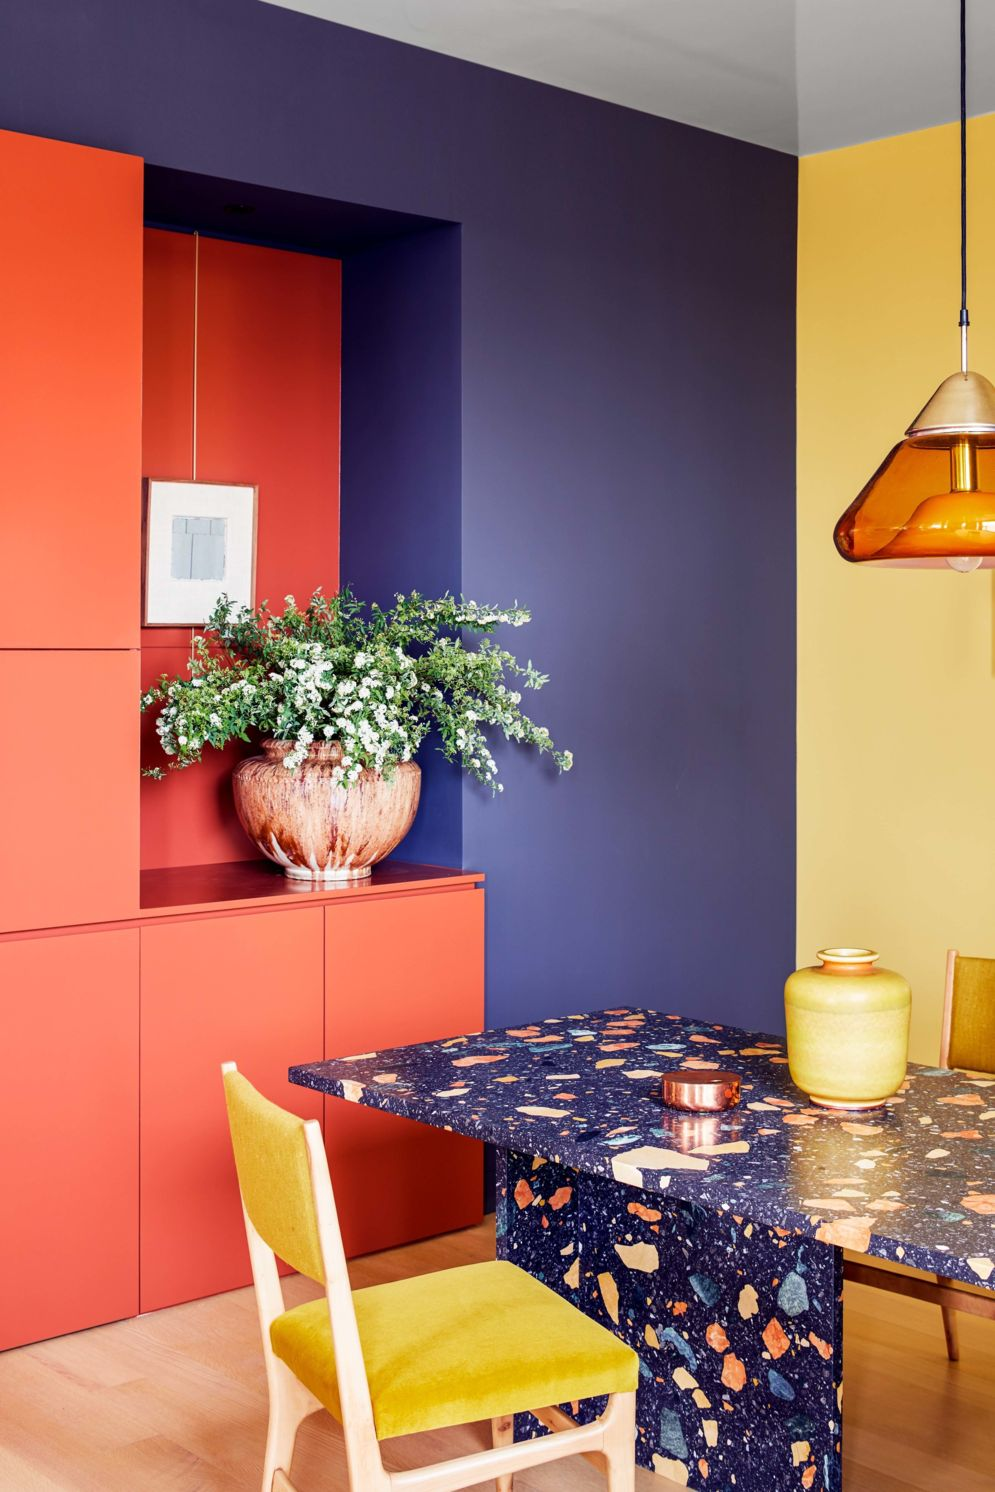 Amazing terrazzo decoration revival giving a cozy look in a warm and friendly interior scheme Image 1